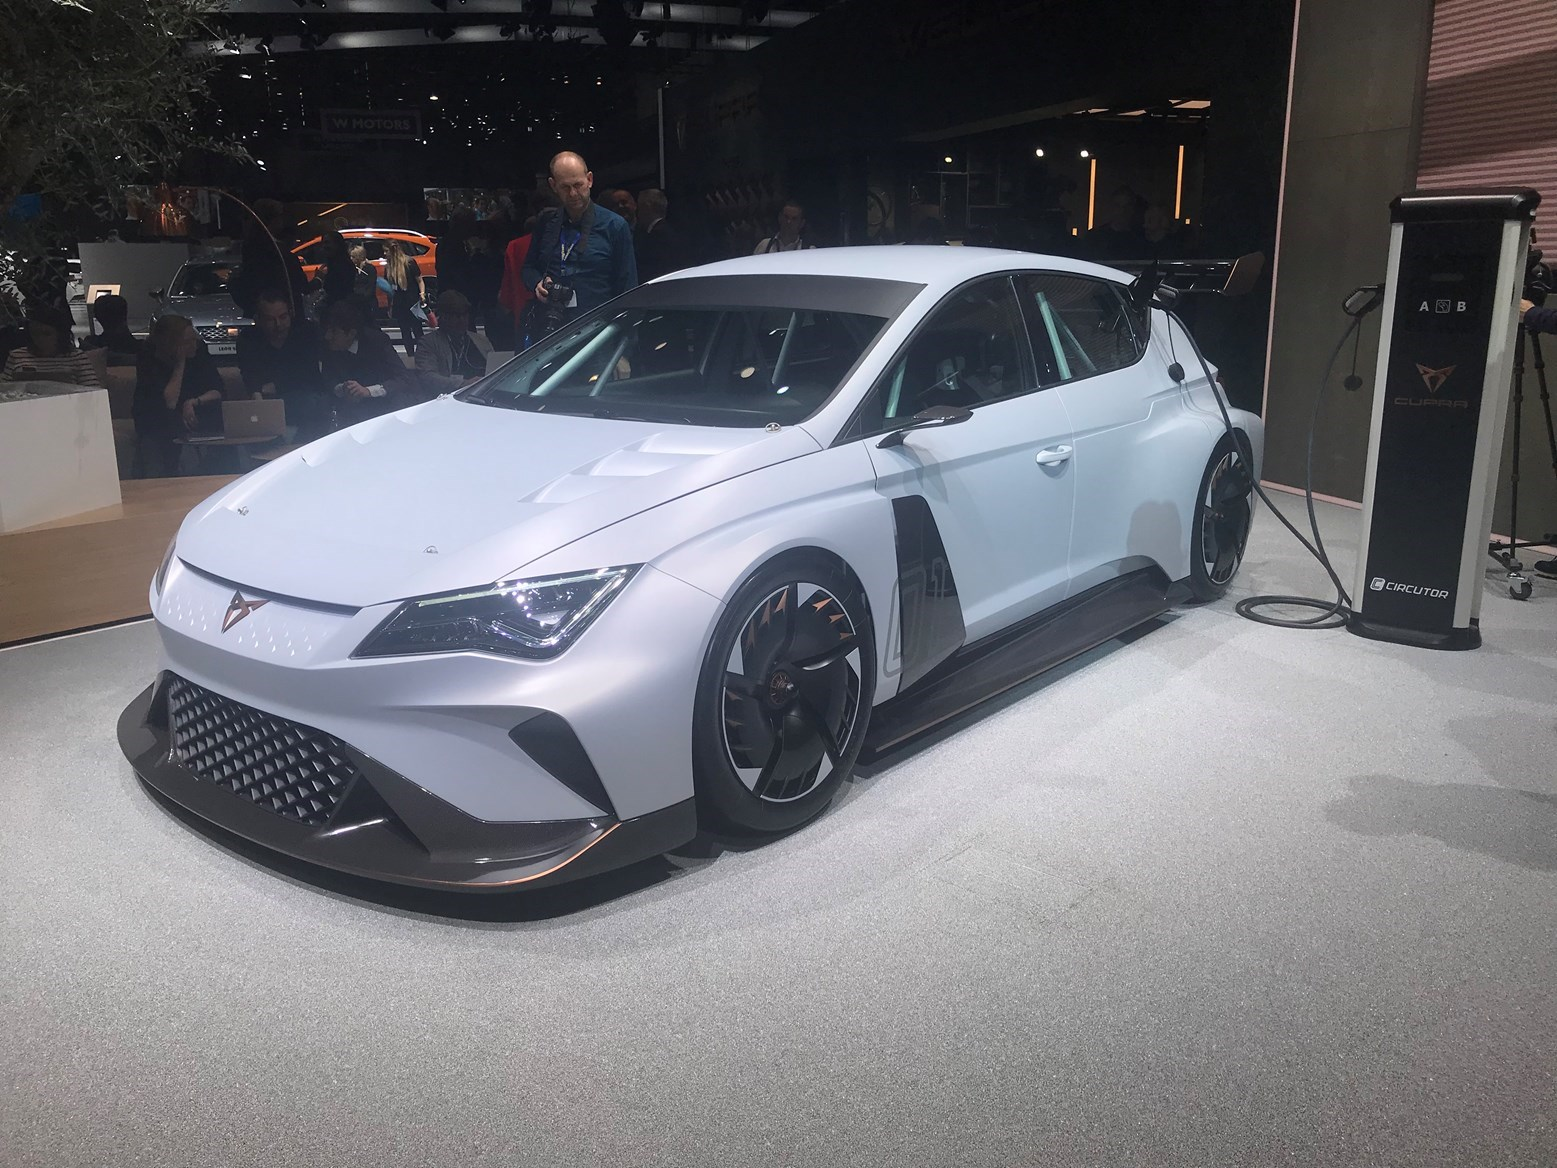 seat u0026 39 s grand plan  first ev in 2020  and a new model every six months